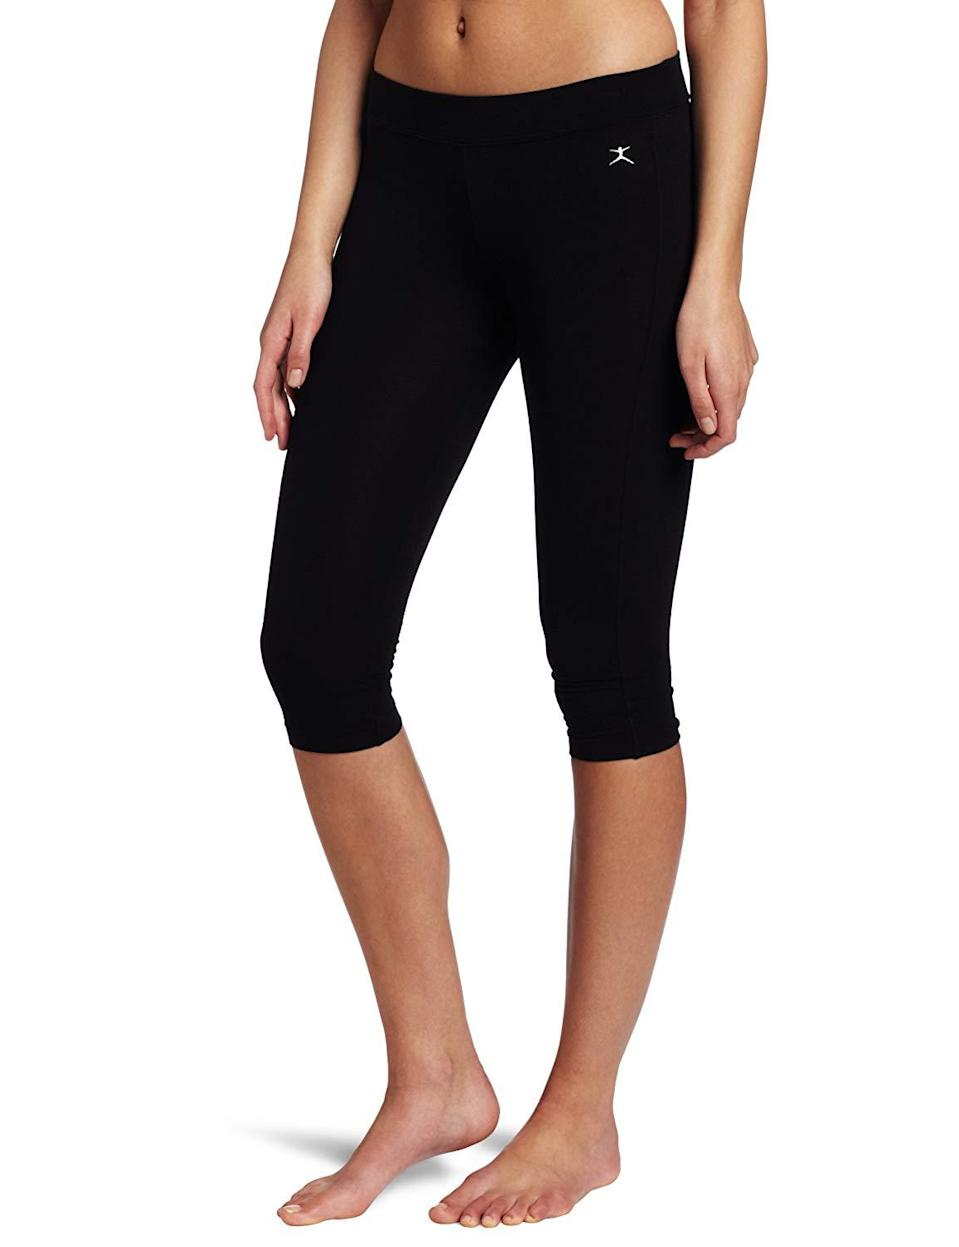 "<h3><a href=""https://www.amazon.com/Danskin-Womens-Capri-Legging-Midnight/dp/B015RFBATM"" rel=""nofollow noopener"" target=""_blank"" data-ylk=""slk:Danskin Capri Legging"" class=""link rapid-noclick-resp"">Danskin Capri Legging</a> </h3><br><br>4 out of 5 stars and 1,031 reviews<br><br><strong>Promising Review:</strong> If it's durability you're concerned about, you can trust Danskin's capri leggings will hold up under some extreme circumstances. <a href=""https://www.amazon.com/gp/customer-reviews/R2HF1CD9I4UPK4"" rel=""nofollow noopener"" target=""_blank"" data-ylk=""slk:One user"" class=""link rapid-noclick-resp"">One user</a> praised the leggings saying, ""I have several pairs of these and absolutely love them. I'm a dog walker, so I need something very comfortable while I'm out working. I also fell, recently, and skinned my knee; there was no damage to the fabric!""<br><br><strong>Danskin</strong> Capri Legging, $, available at <a href=""https://www.amazon.com/Danskin-Womens-Capri-Legging-Midnight/dp/B015RFBATM"" rel=""nofollow noopener"" target=""_blank"" data-ylk=""slk:Amazon"" class=""link rapid-noclick-resp"">Amazon</a>"